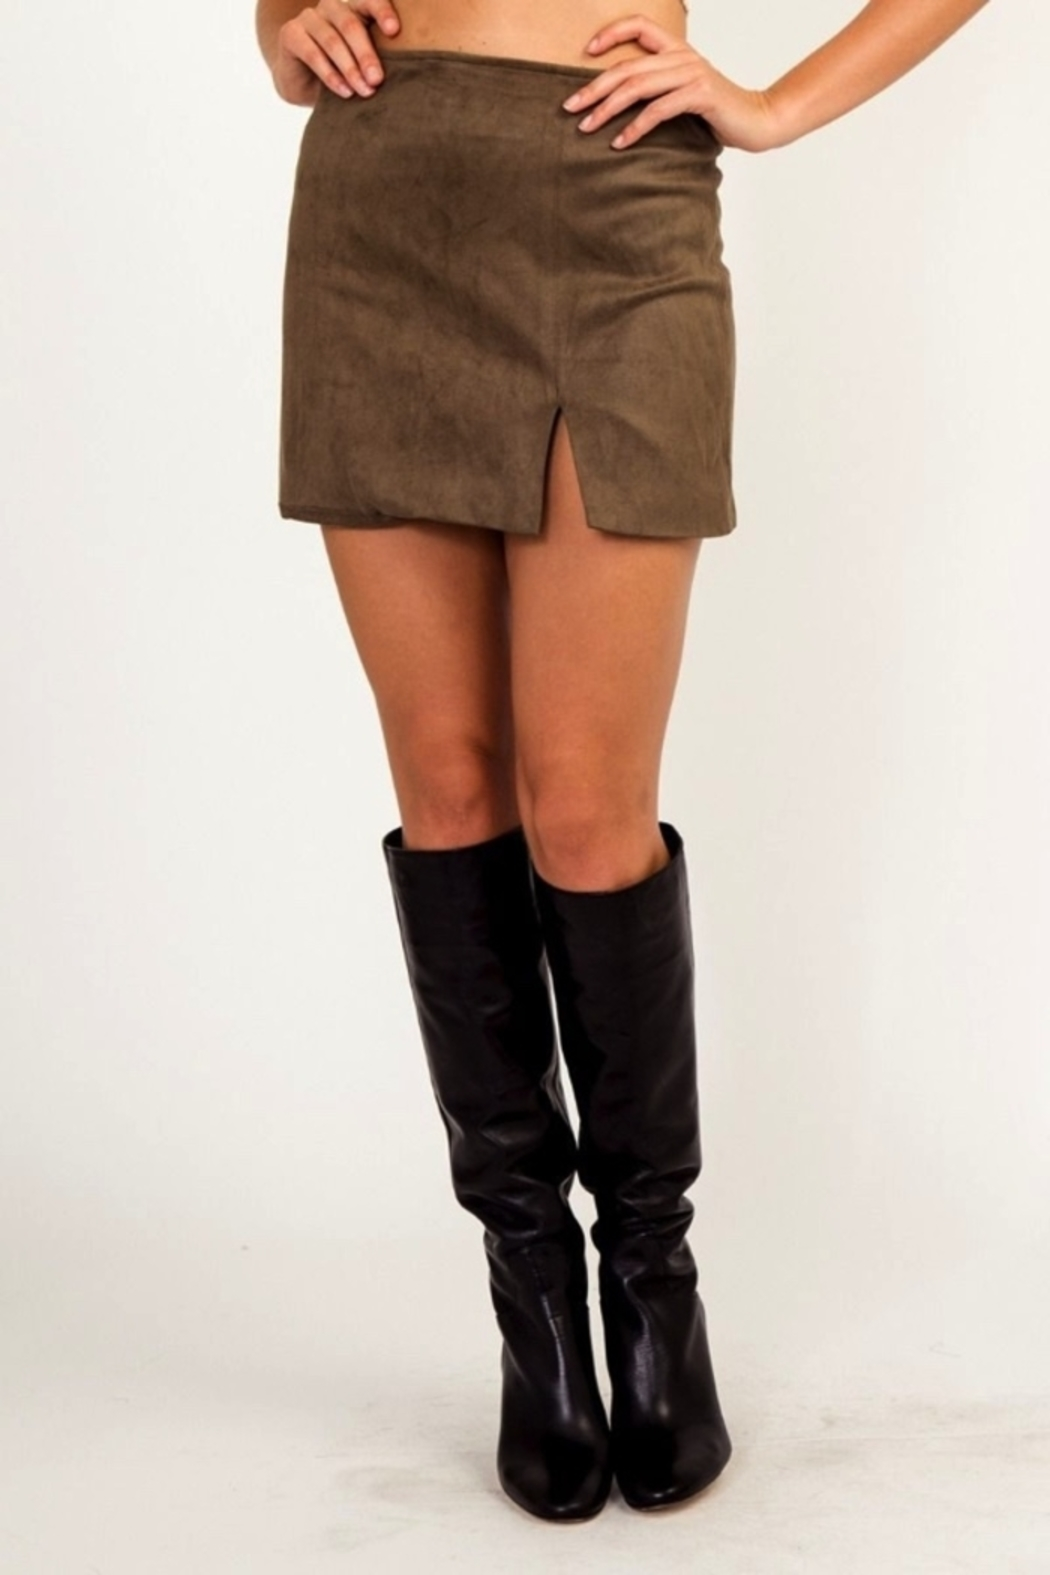 59c0cf194c8 Olivaceous Faux Suede Mini Skirt from Orlando by Zingara Souls ...